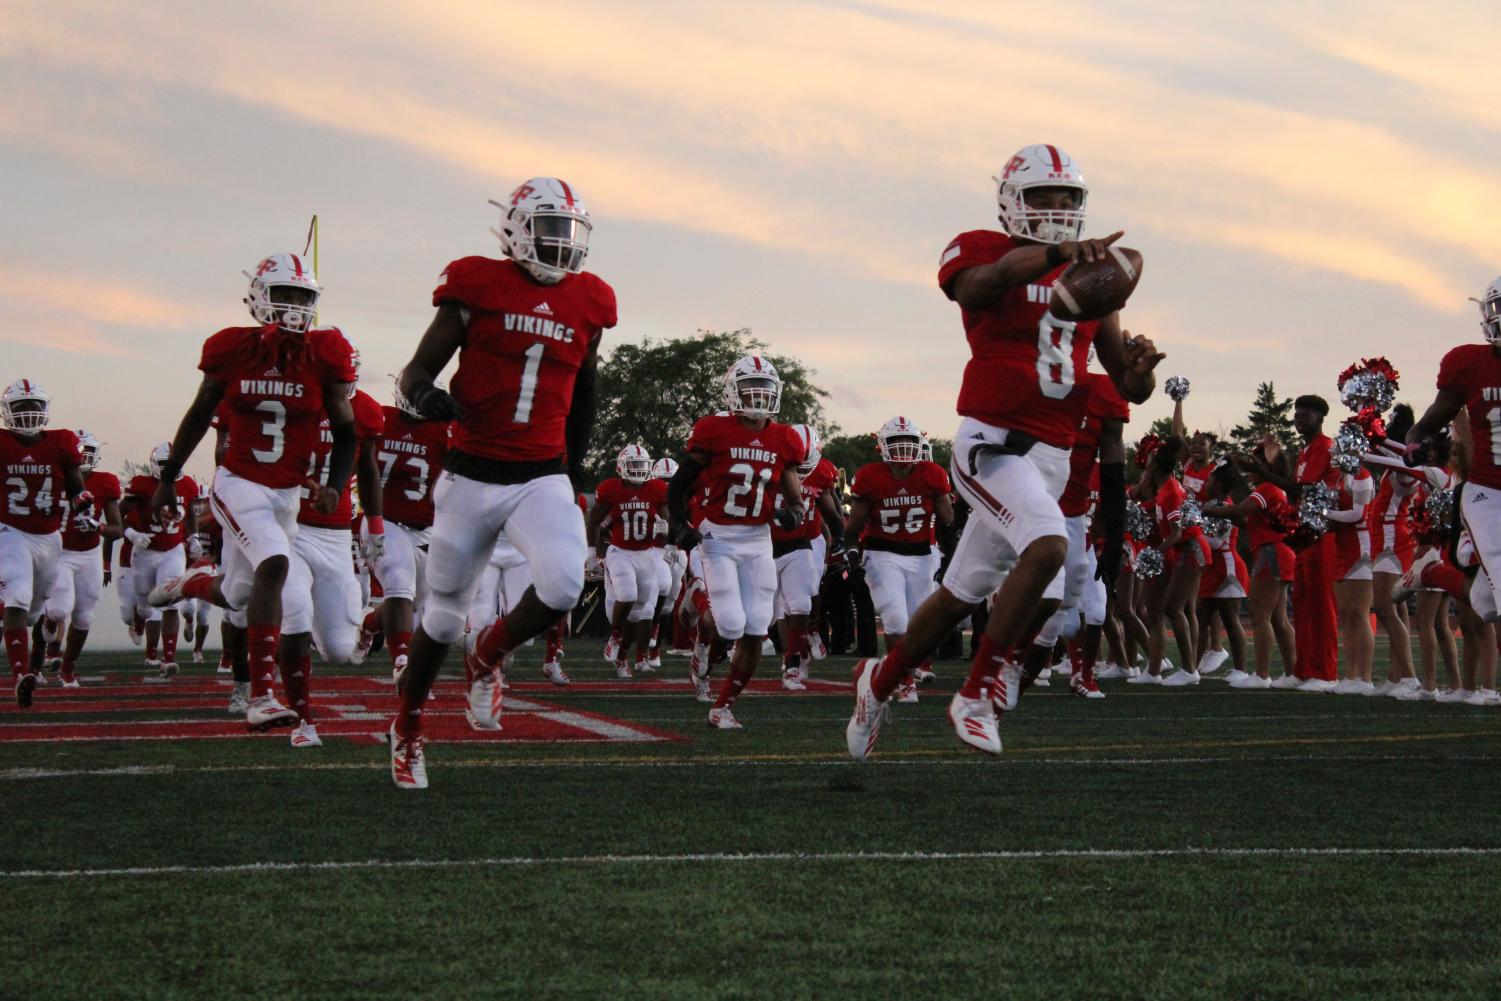 H-F makes their entrance in their homecoming game against Andrew. The Vikings went on to defeat the Thunderbolts 35-14